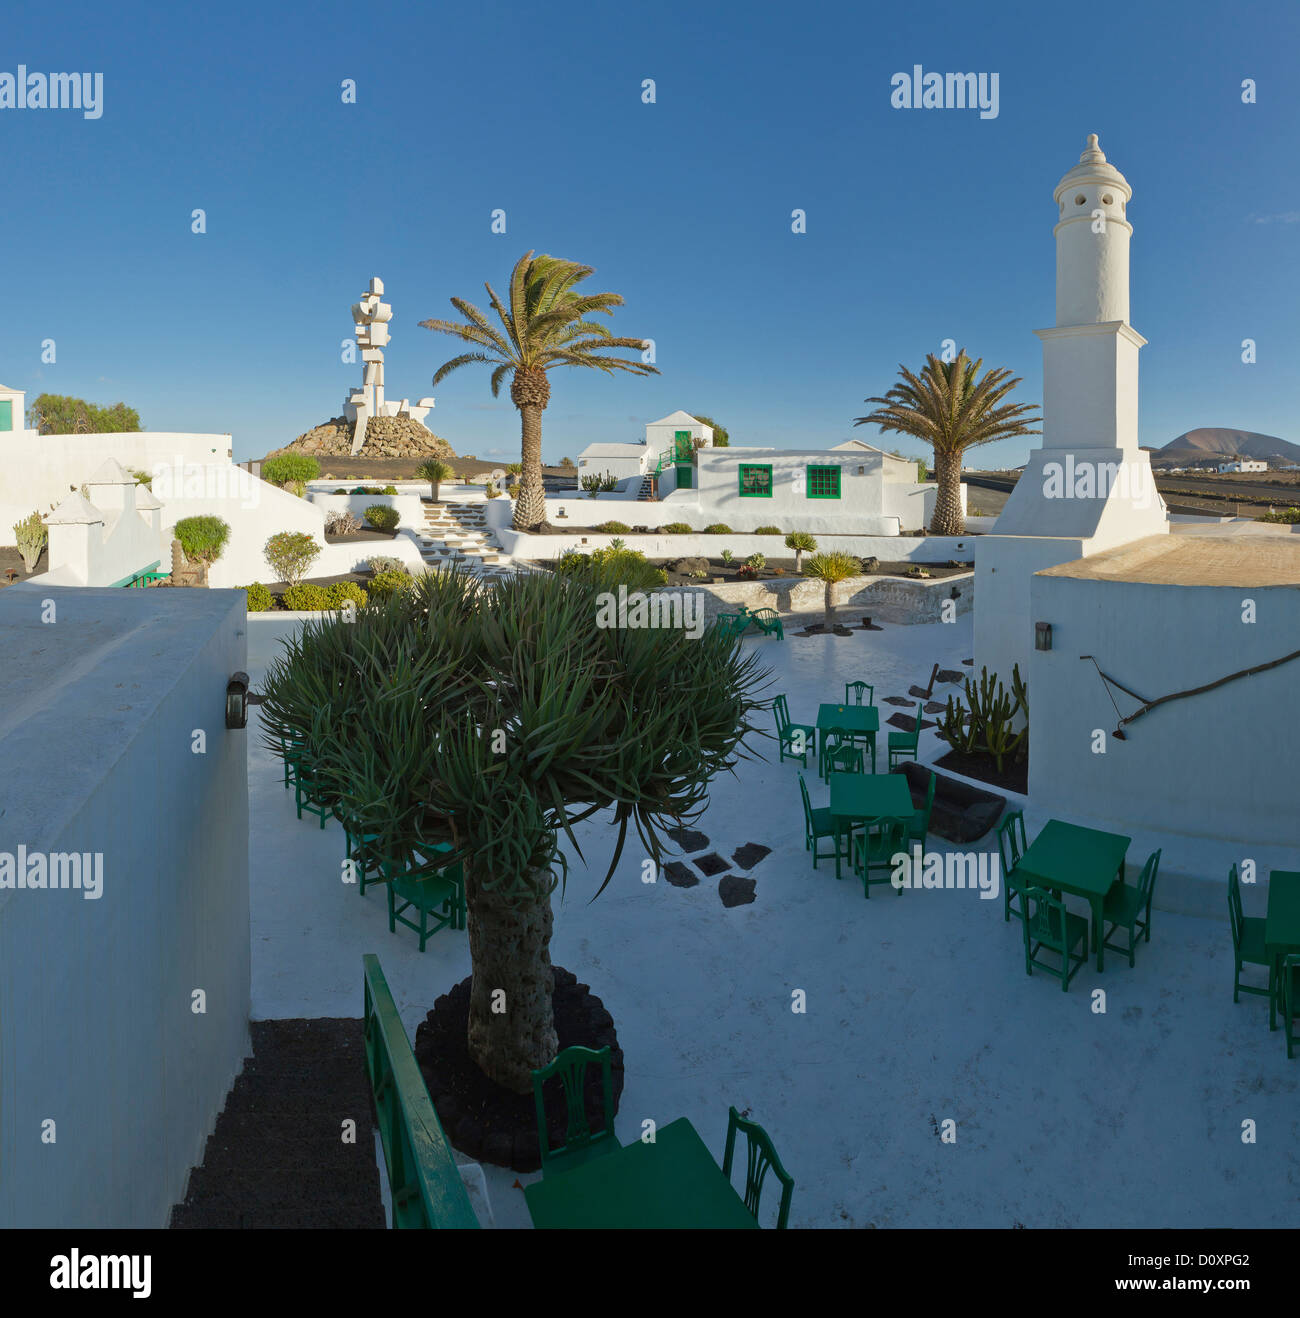 Spain, Lanzarote, Mozaga, Monumento al campesina, monument, city, village, summer, Canary Islands, outdoor cafe, - Stock Image